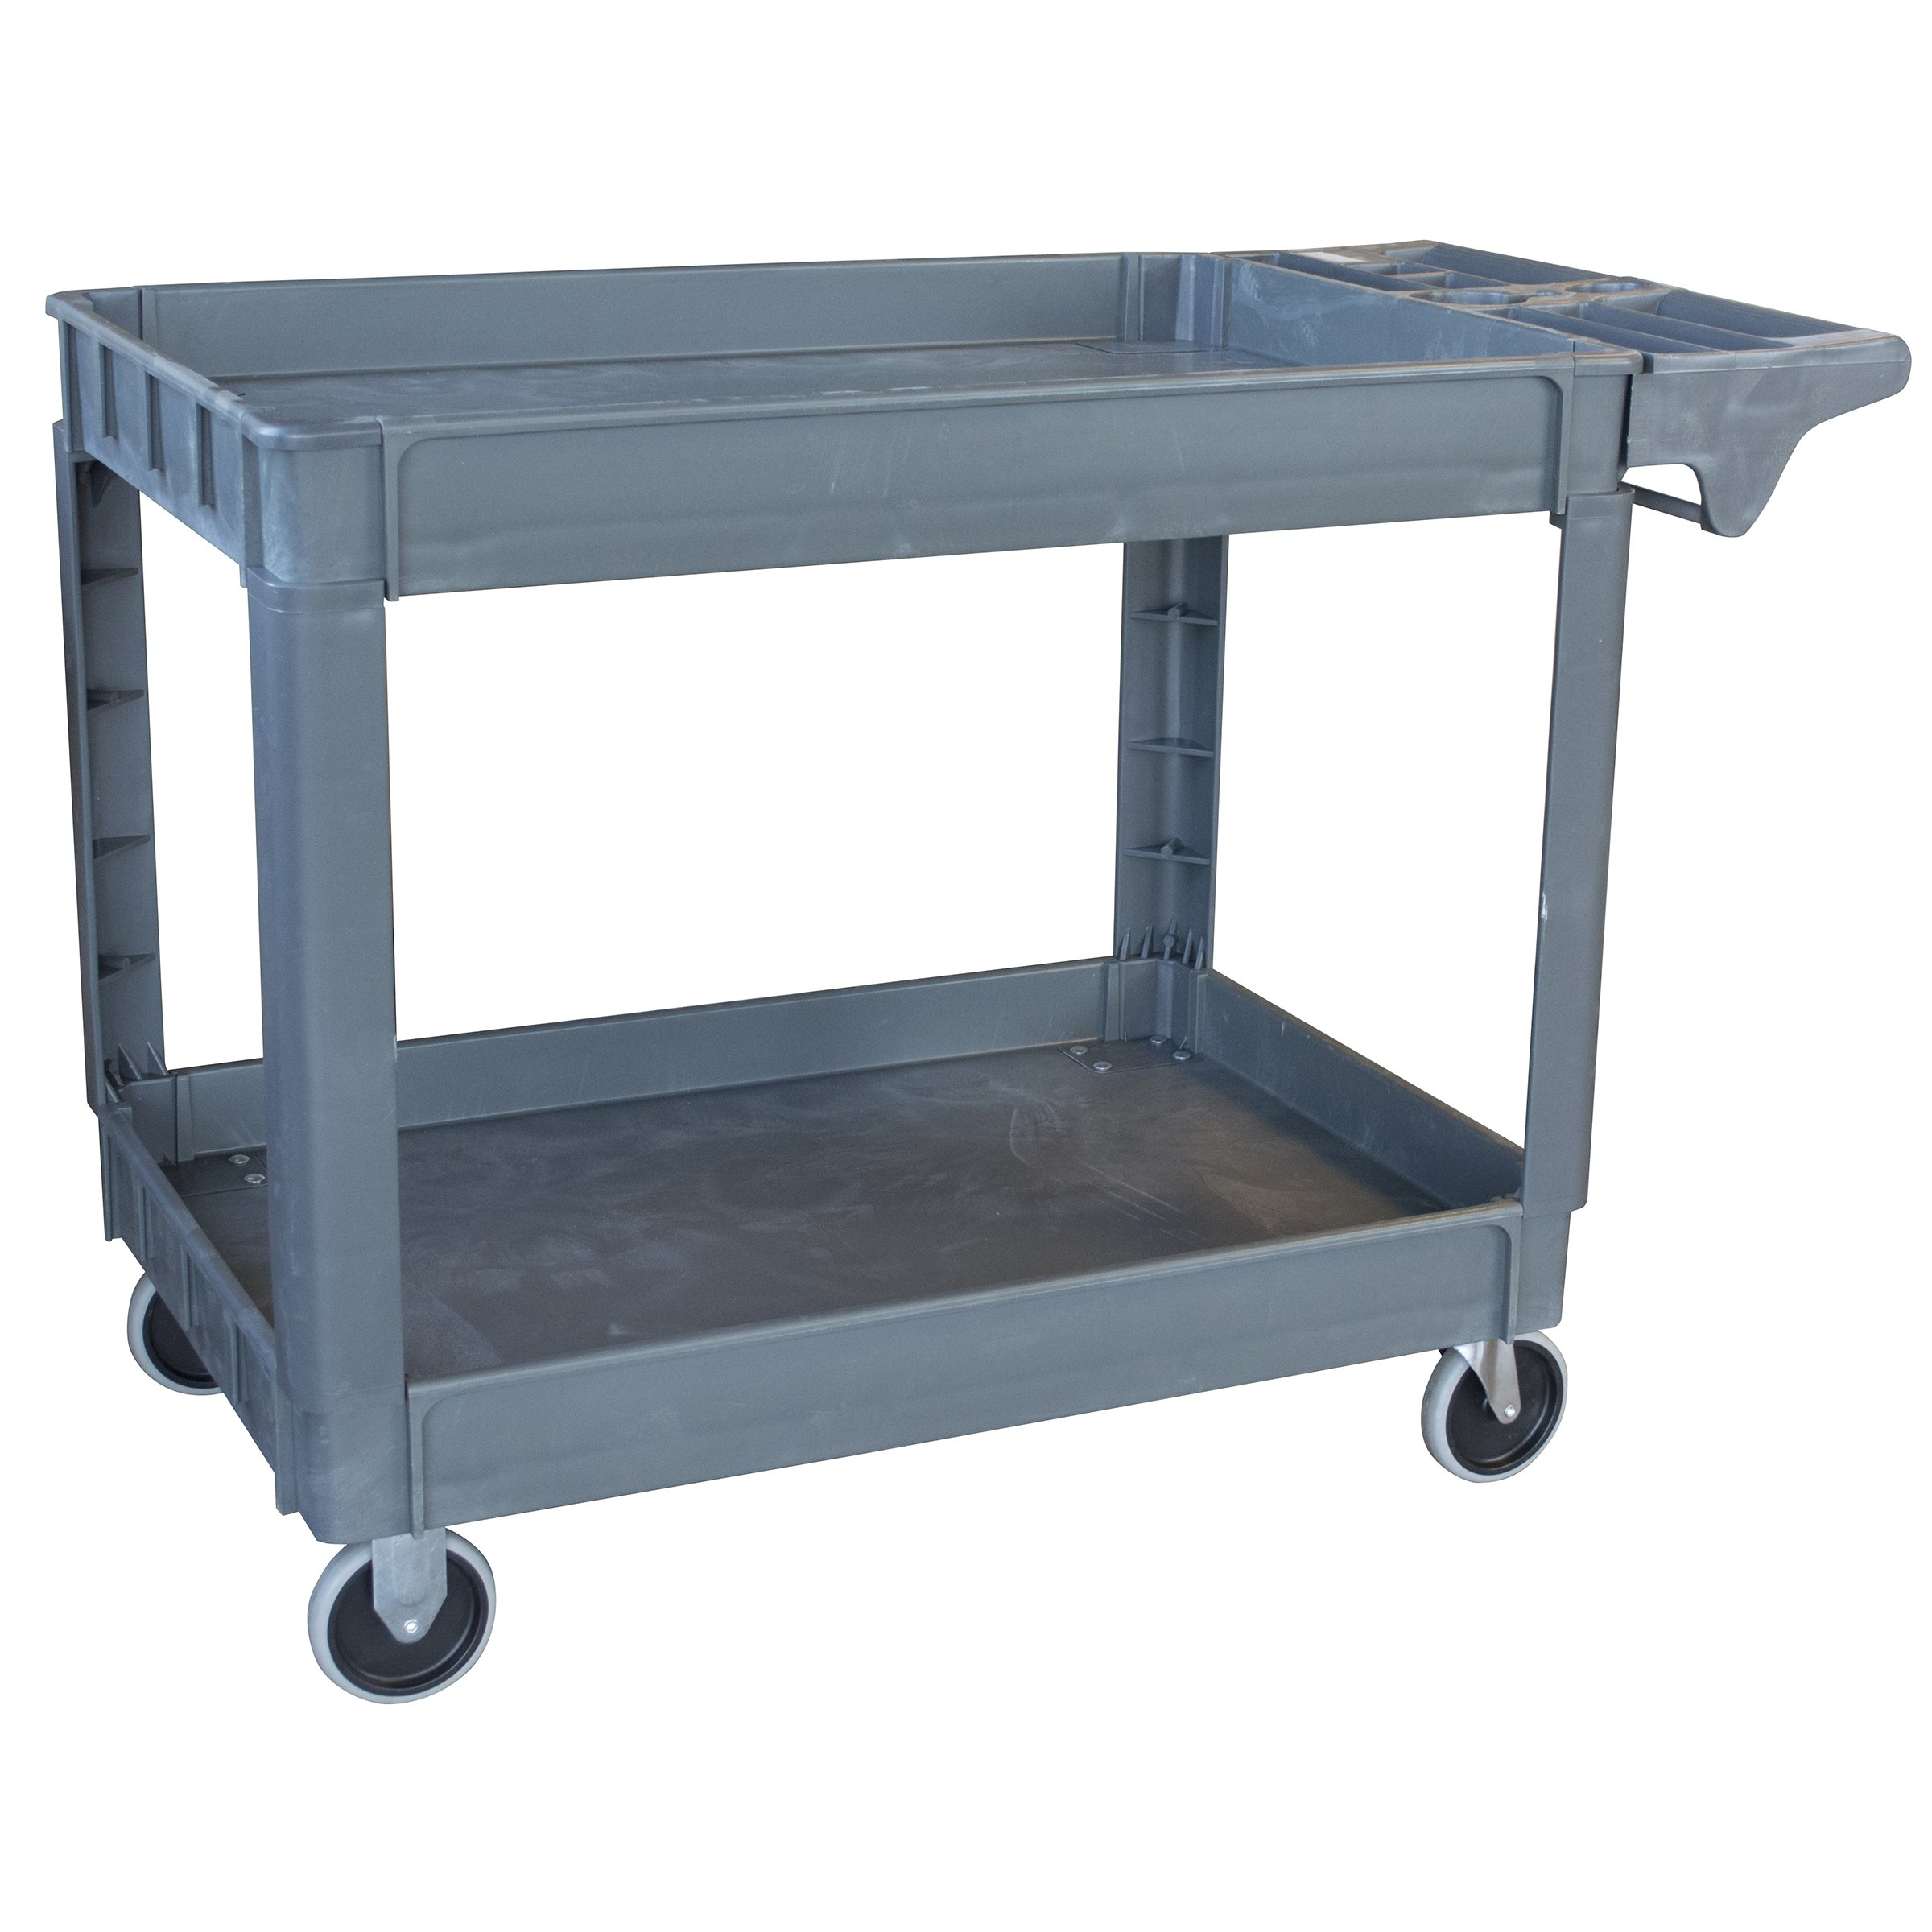 Pro Series SCART550XL Two-Shelf Heavy Duty Utility Cart with 550 lb Capacity, X-Large